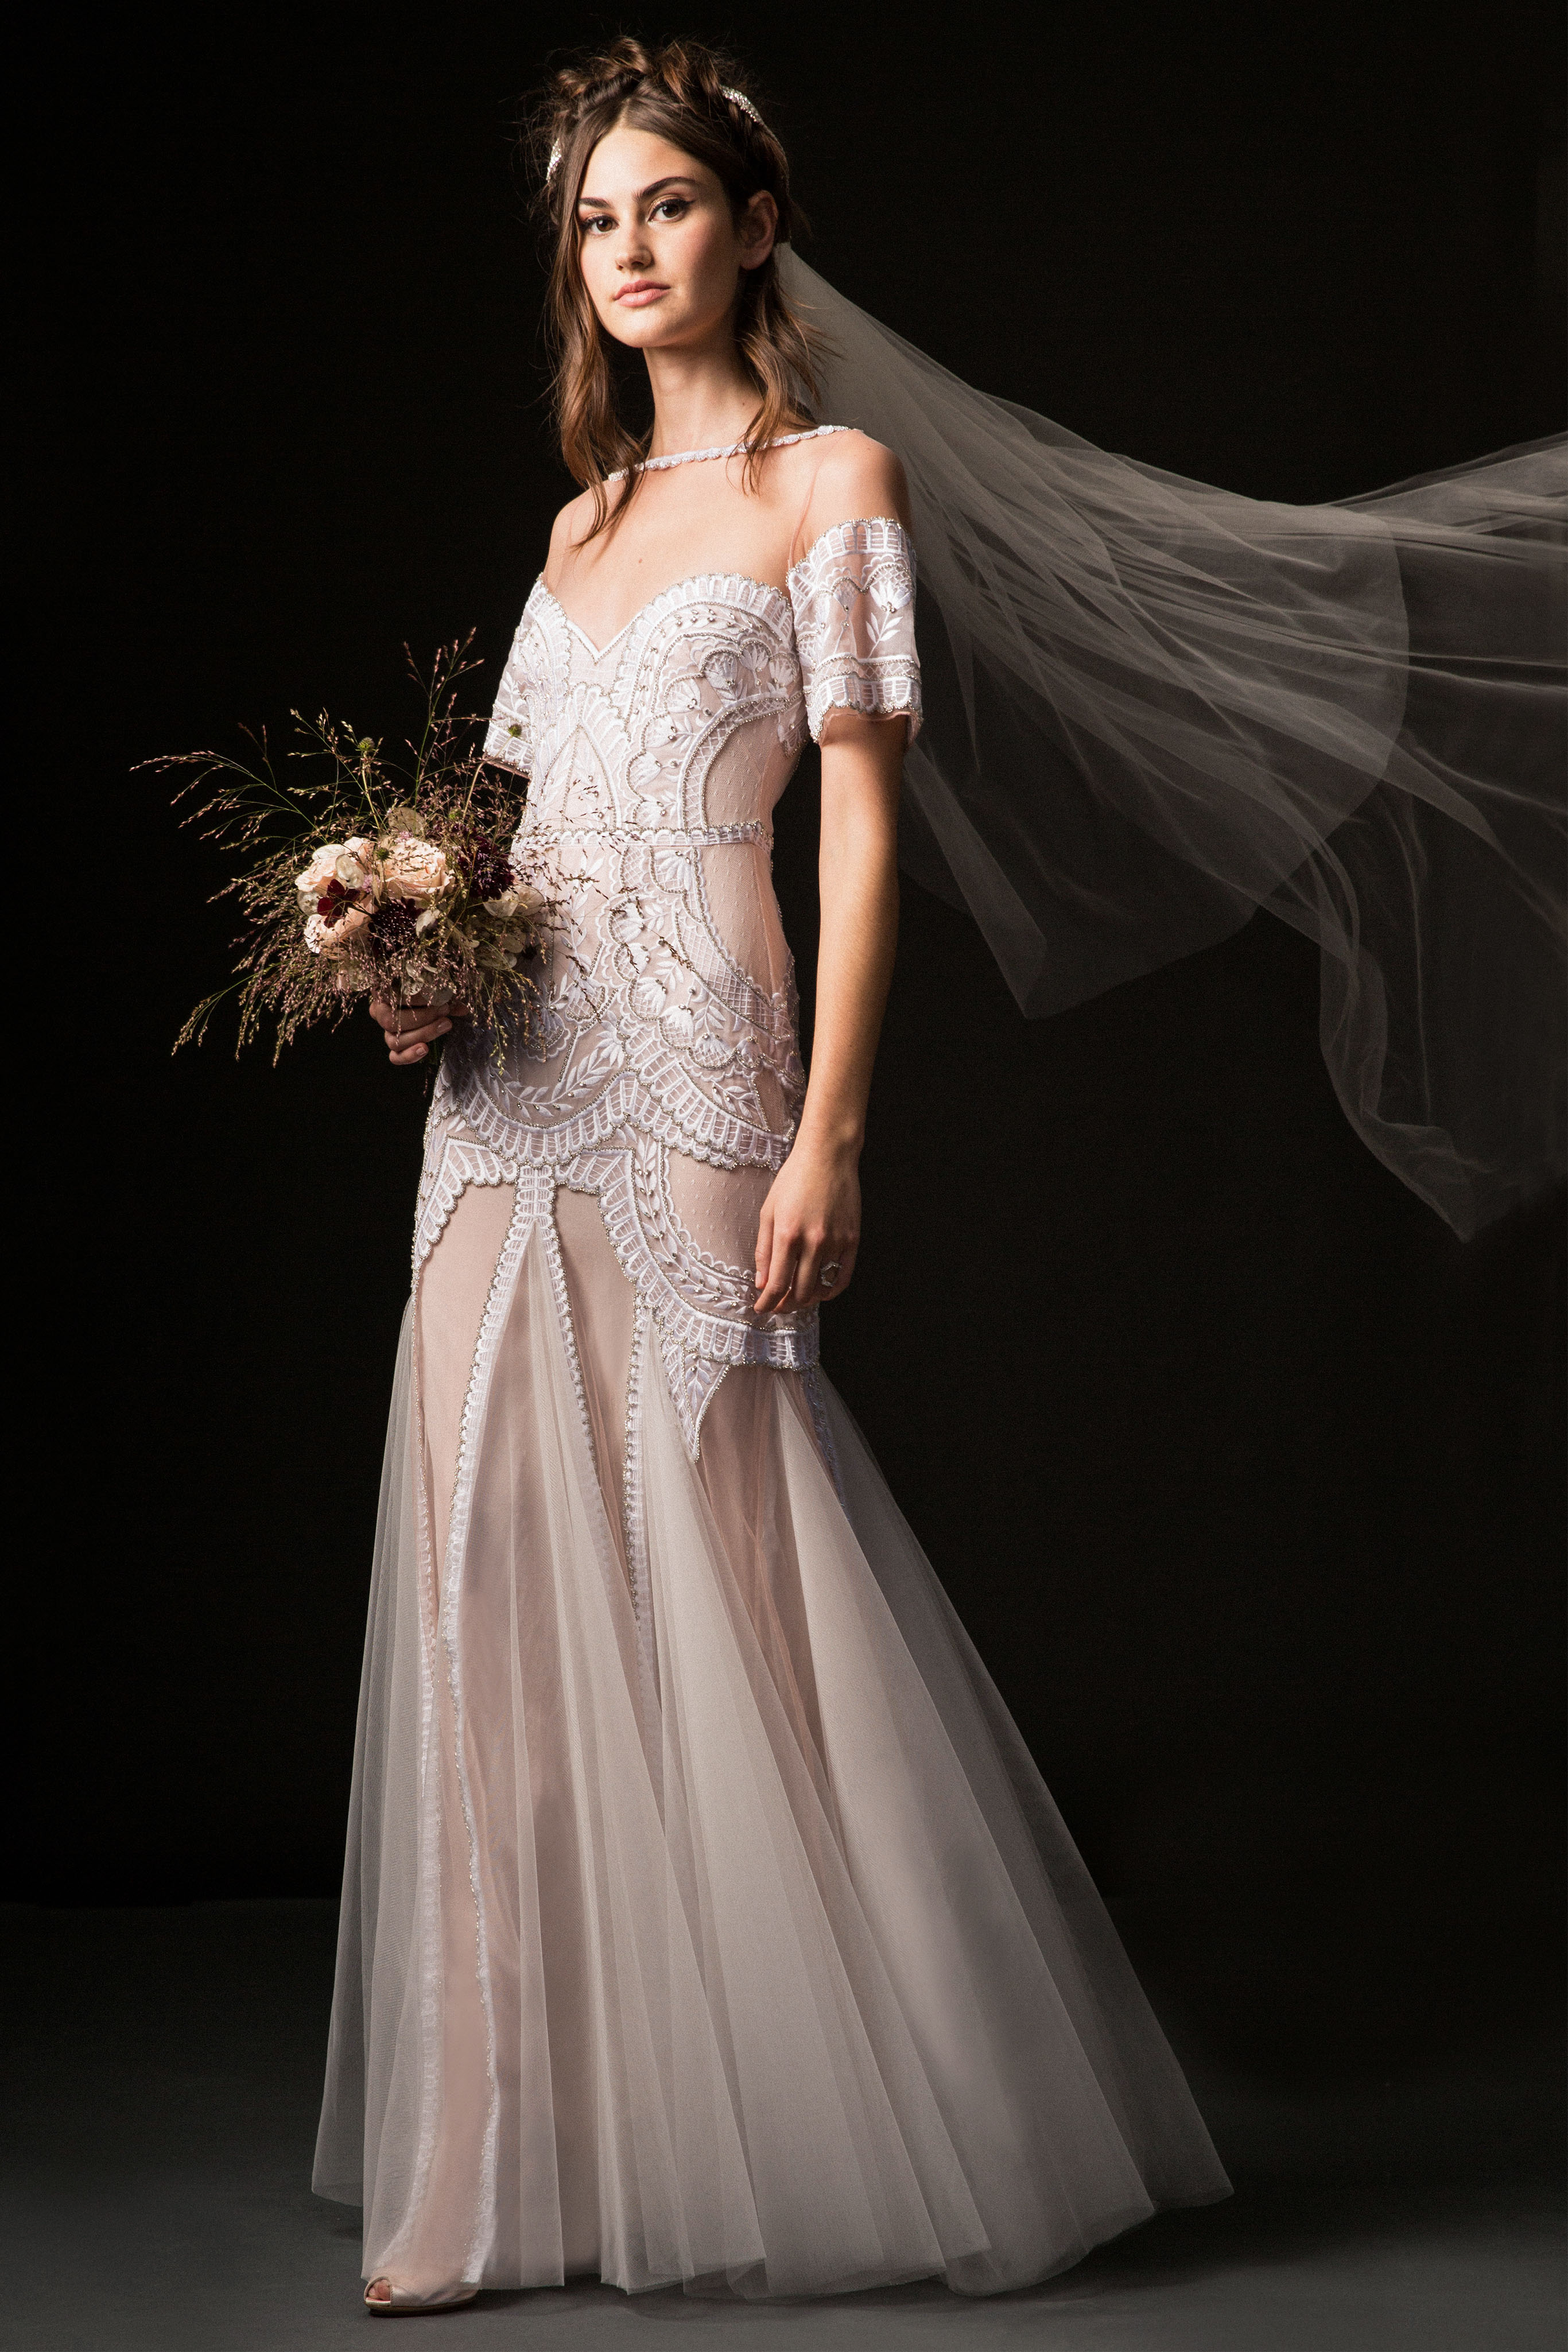 Temperley Fall 2019 Wedding Dress Collection